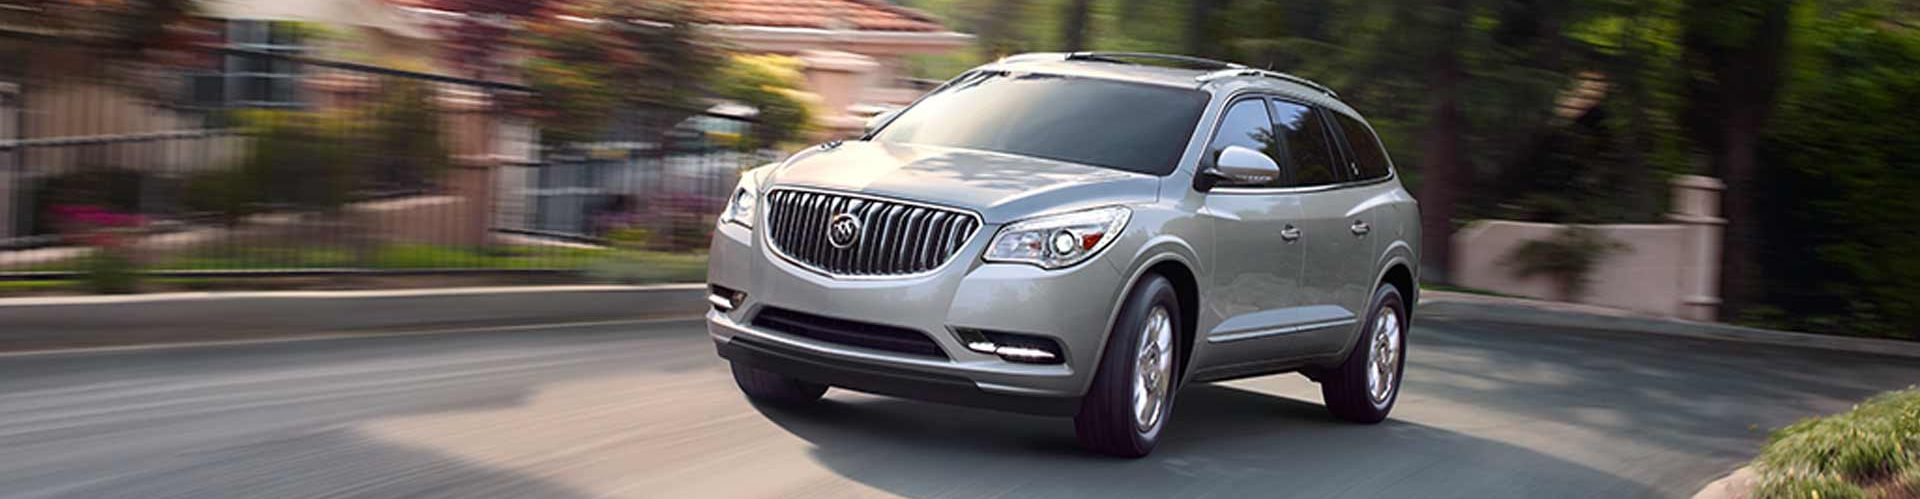 special december down buick lease watch preferred payments envision group enclave